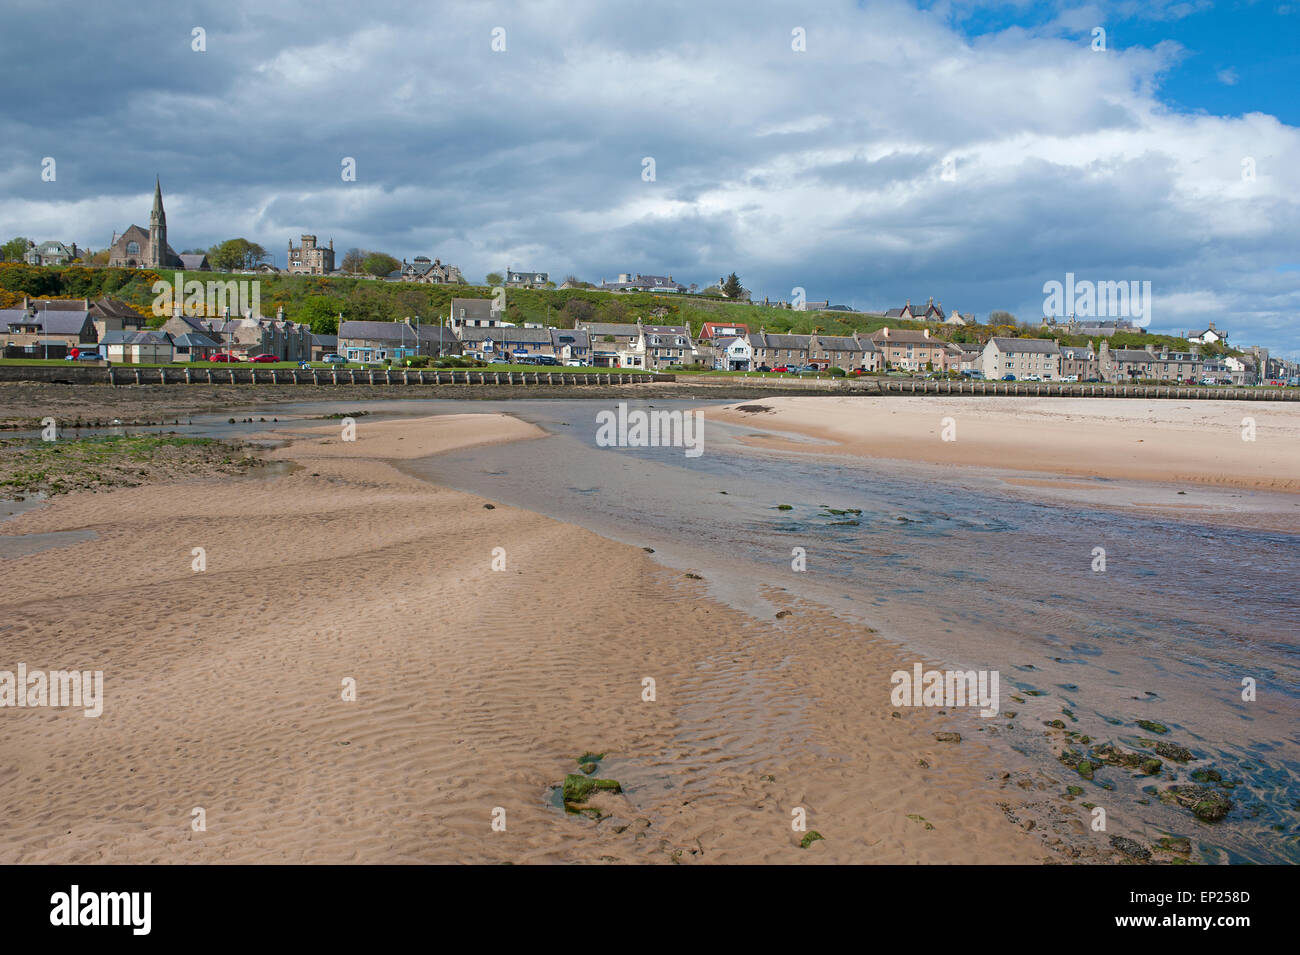 The River Lossie estuary and the town of Lossiemouth on the Moray Firth.  SCO 9790. - Stock Image